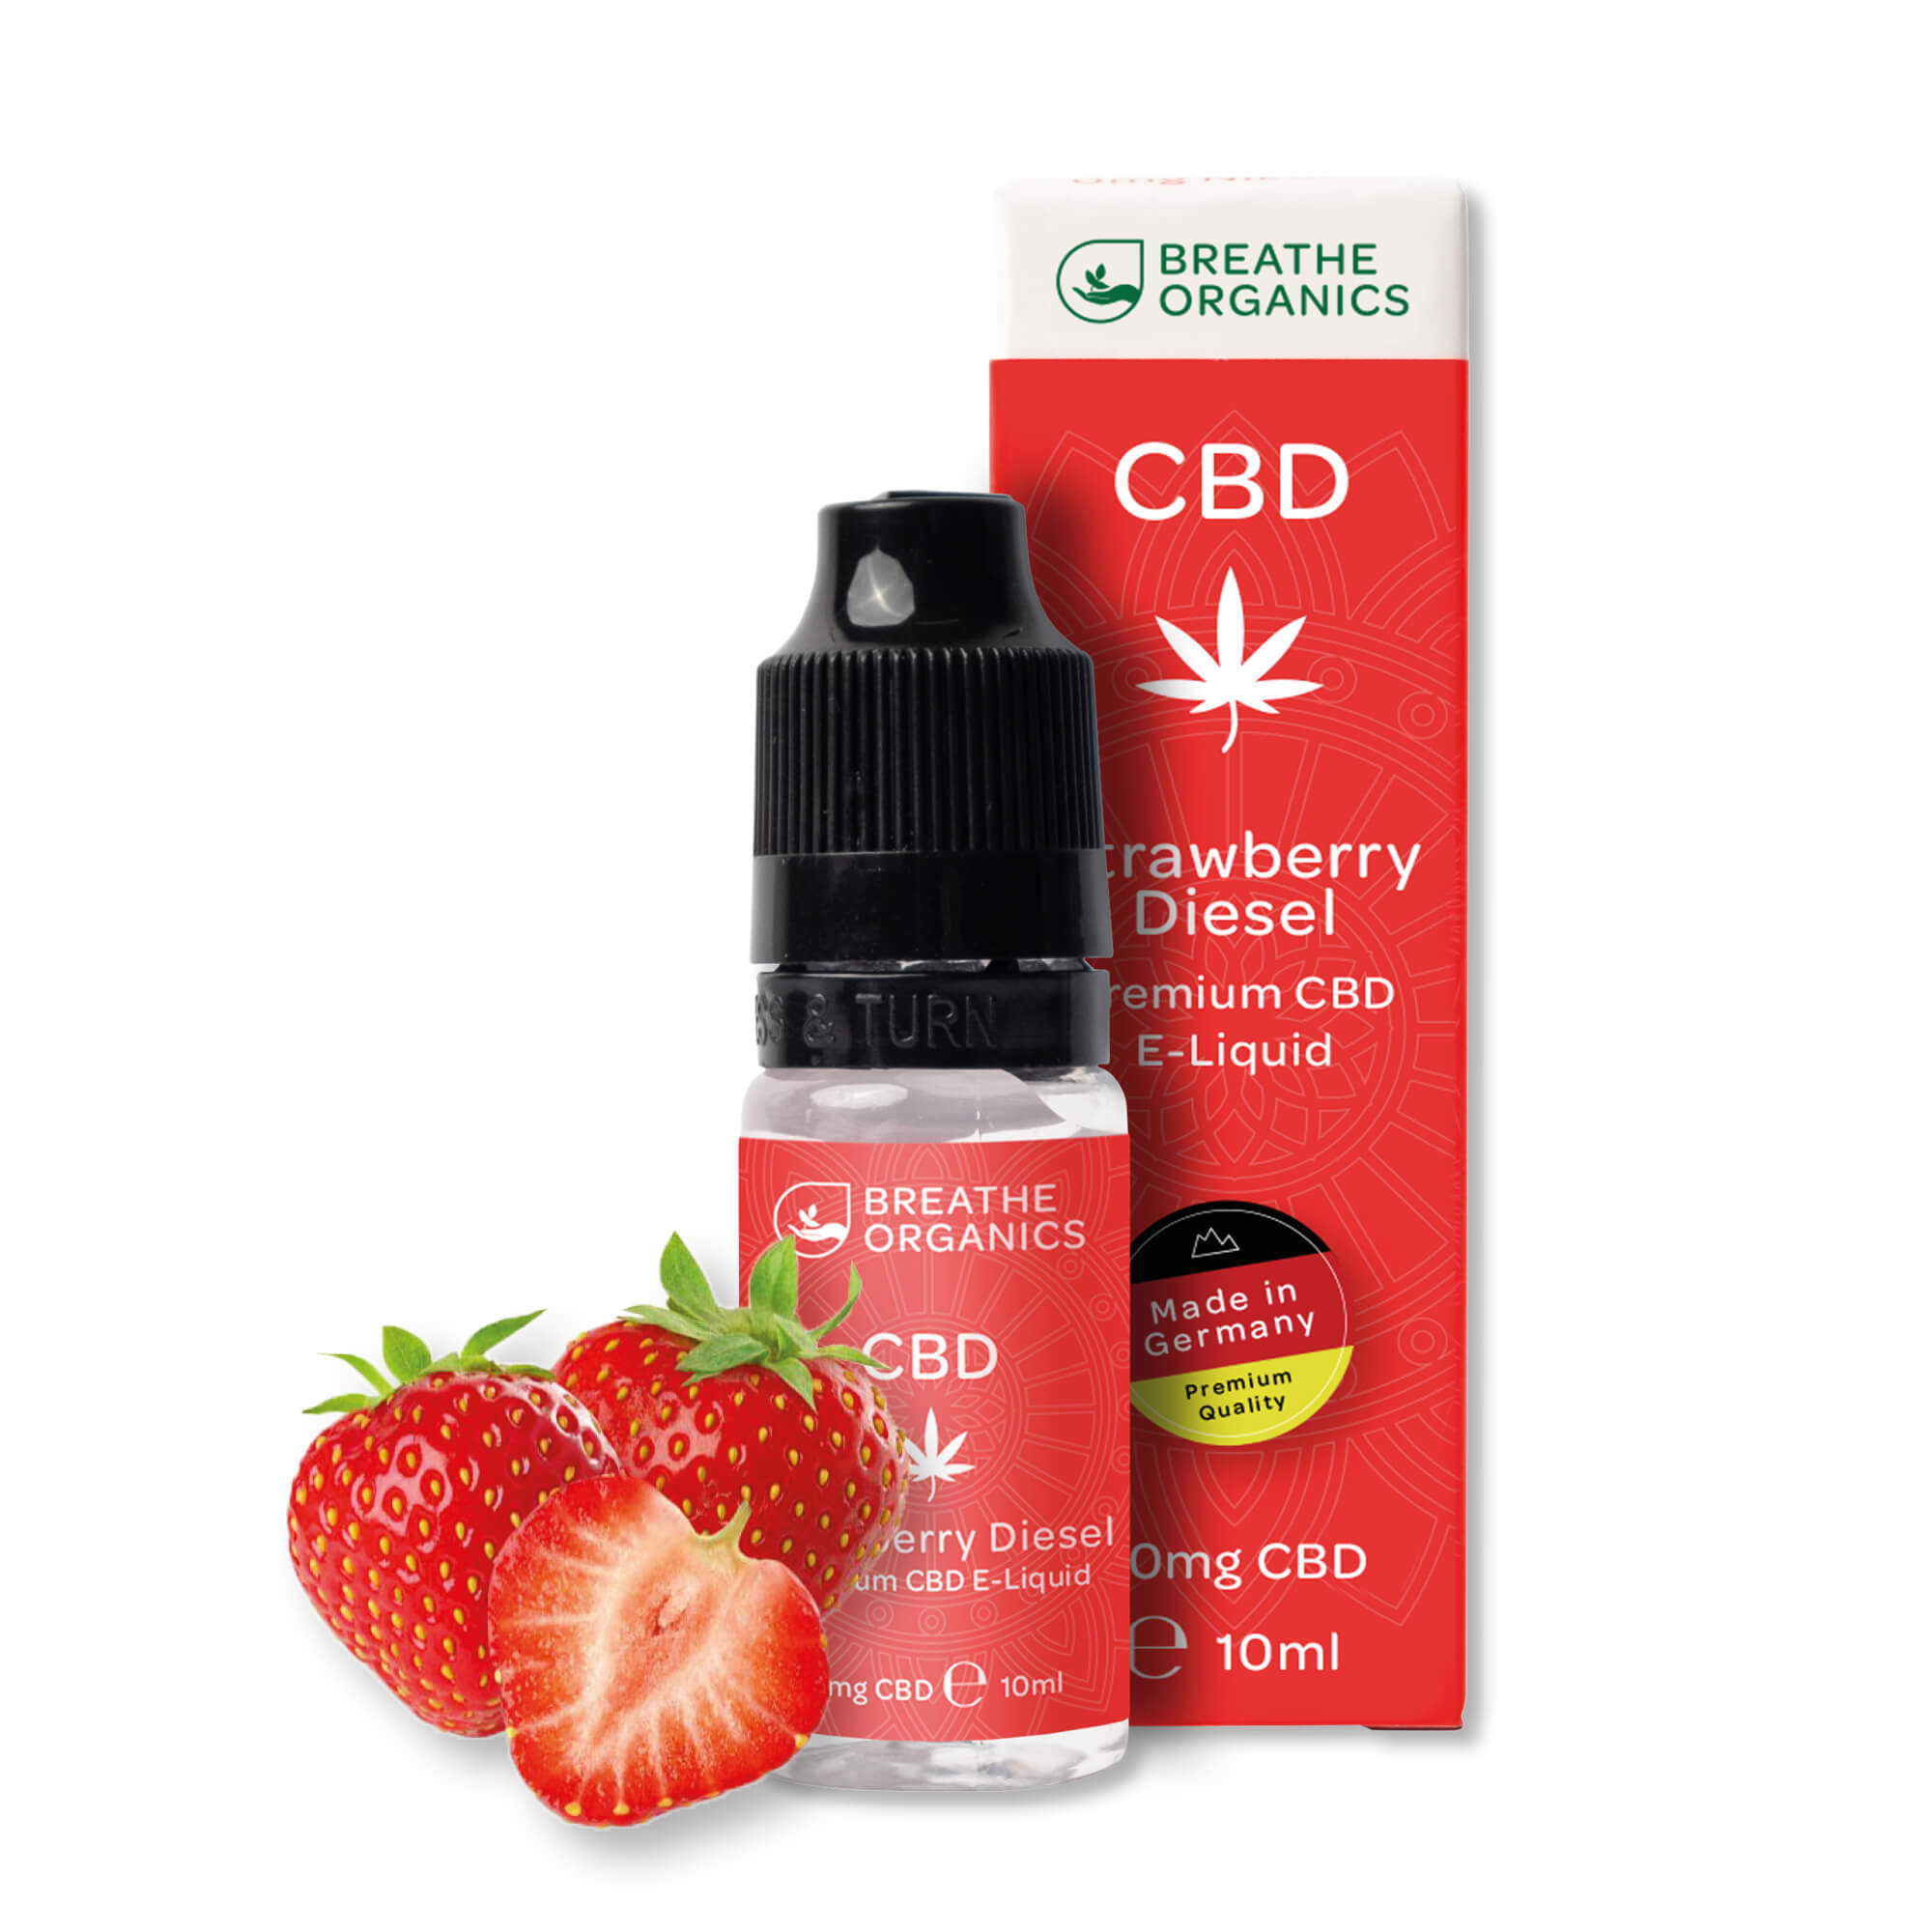 Breathe Organics - Premium CBD E-Liquid Strawberry Diesel 30mg